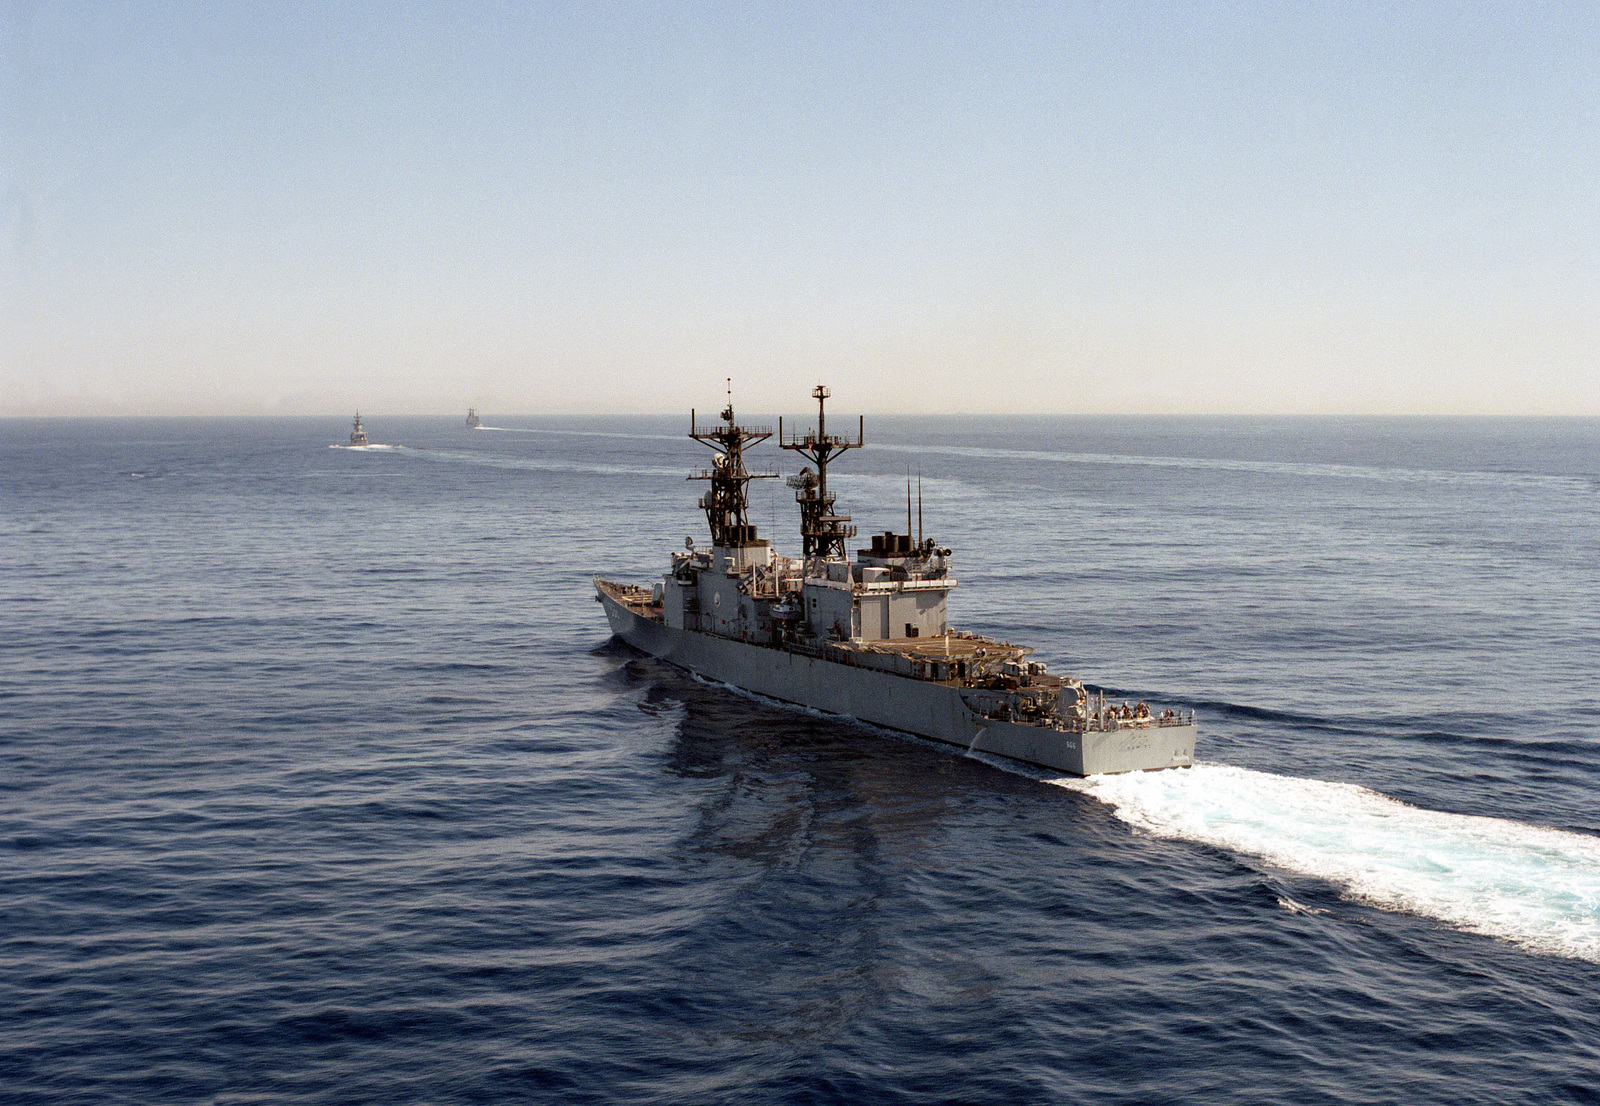 A port quarter view of the destroyer USS HEWITT (DD 966) underway off the coast of San Diego, California